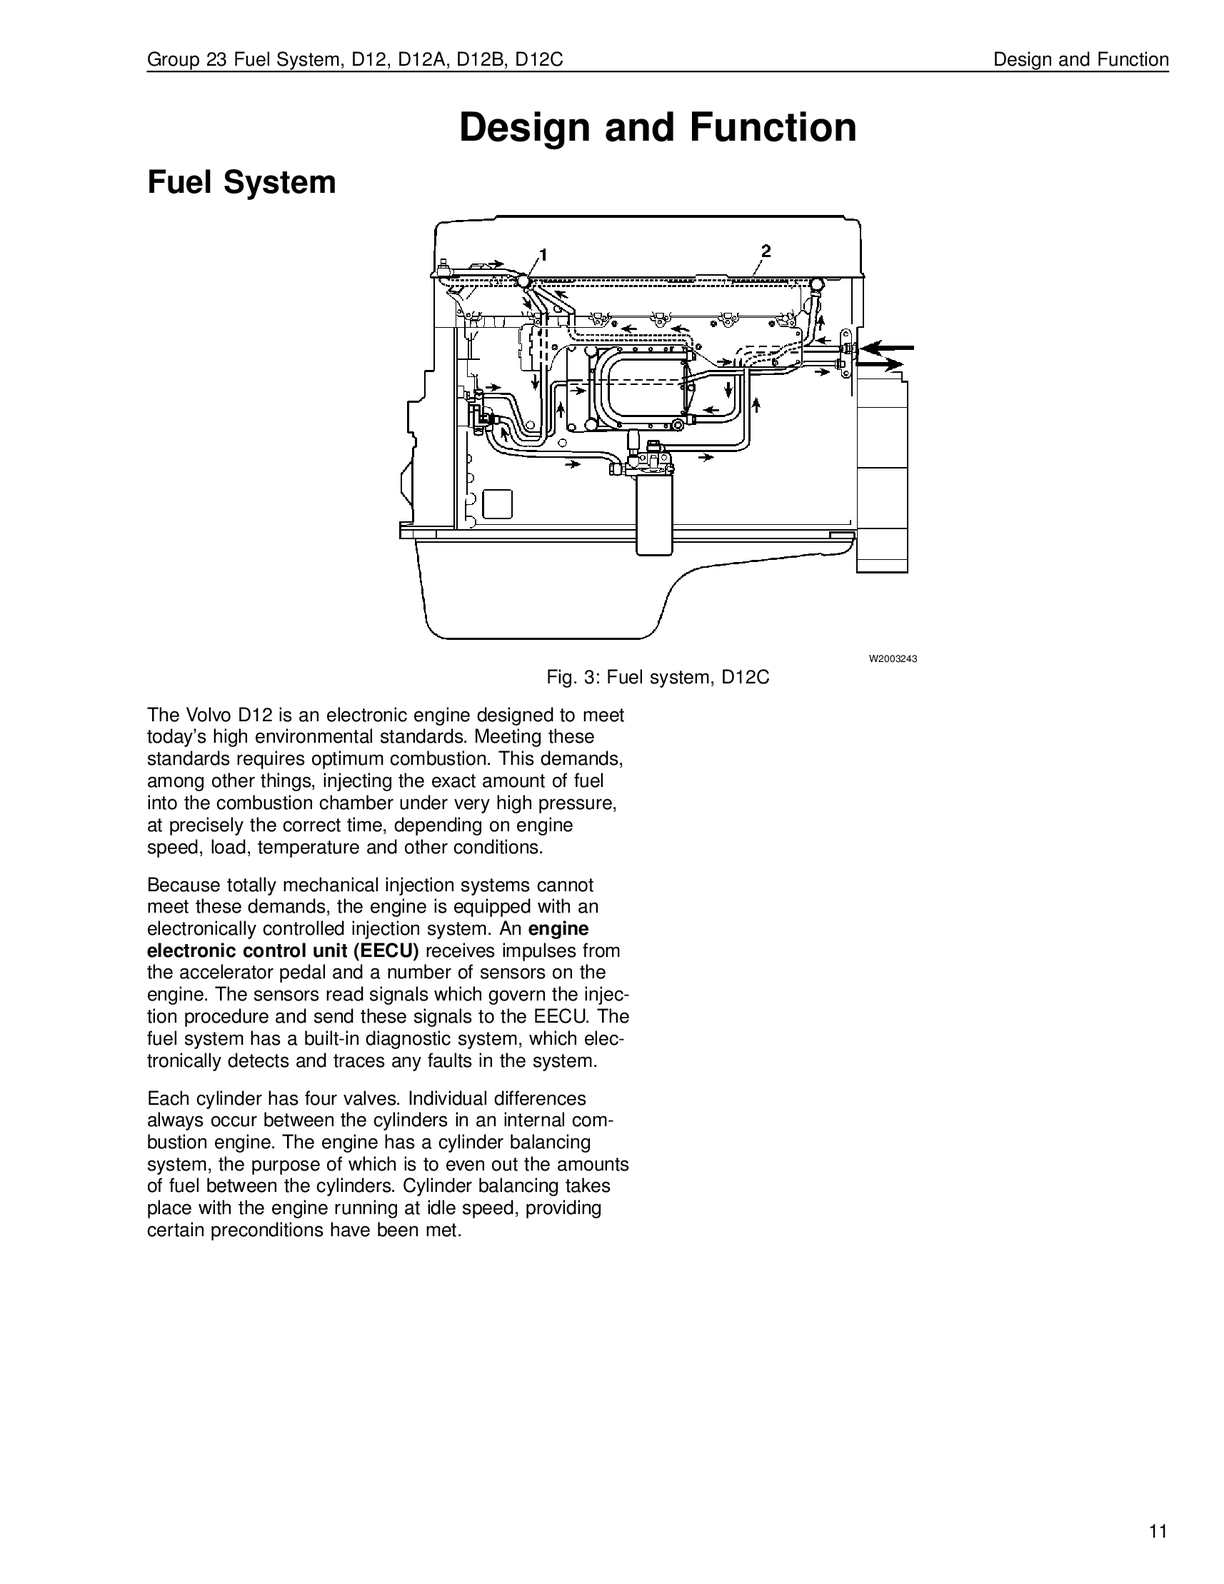 Volvo Fuel System D12 D12a D12b D12c Calameo Downloader. Volvo. Volvo D12 Engine Fuel Diagram At Scoala.co